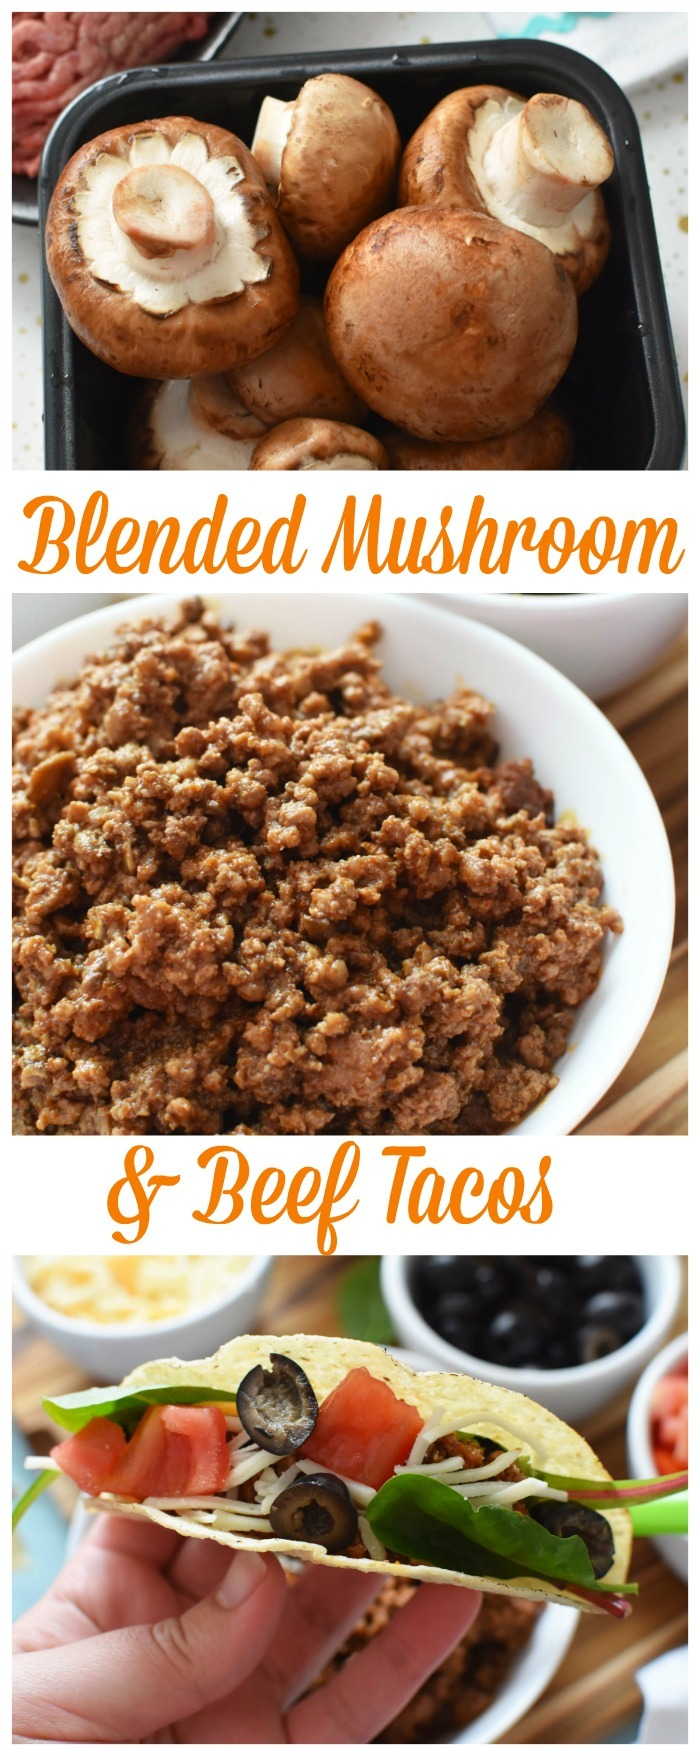 Blended Mushroom and Beef Tacos